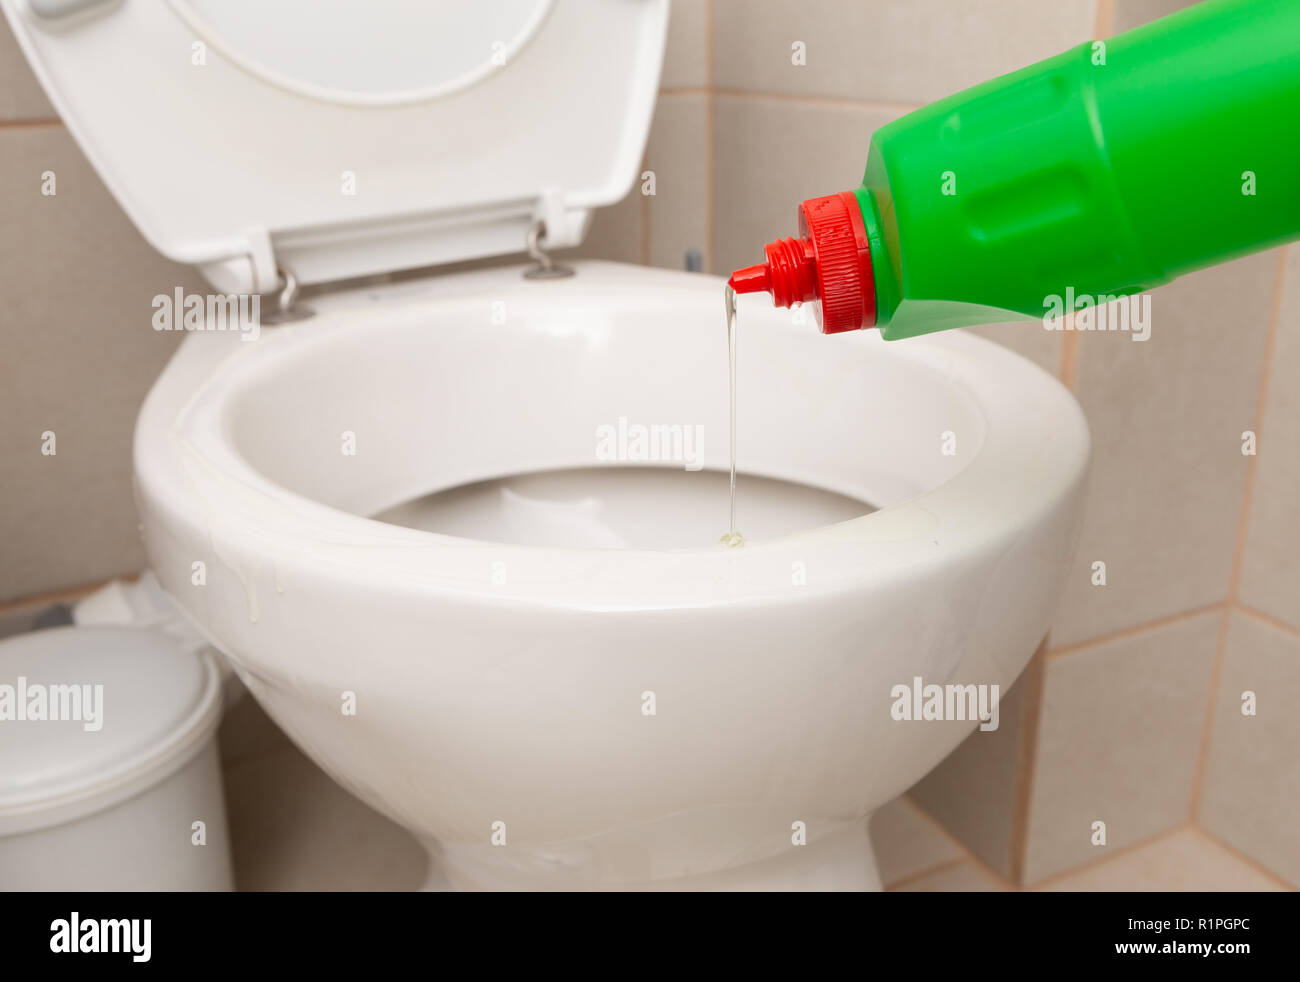 Disinfectant from green bottle being poured in white porcelain toilet bowl as hygiene concept - Stock Image